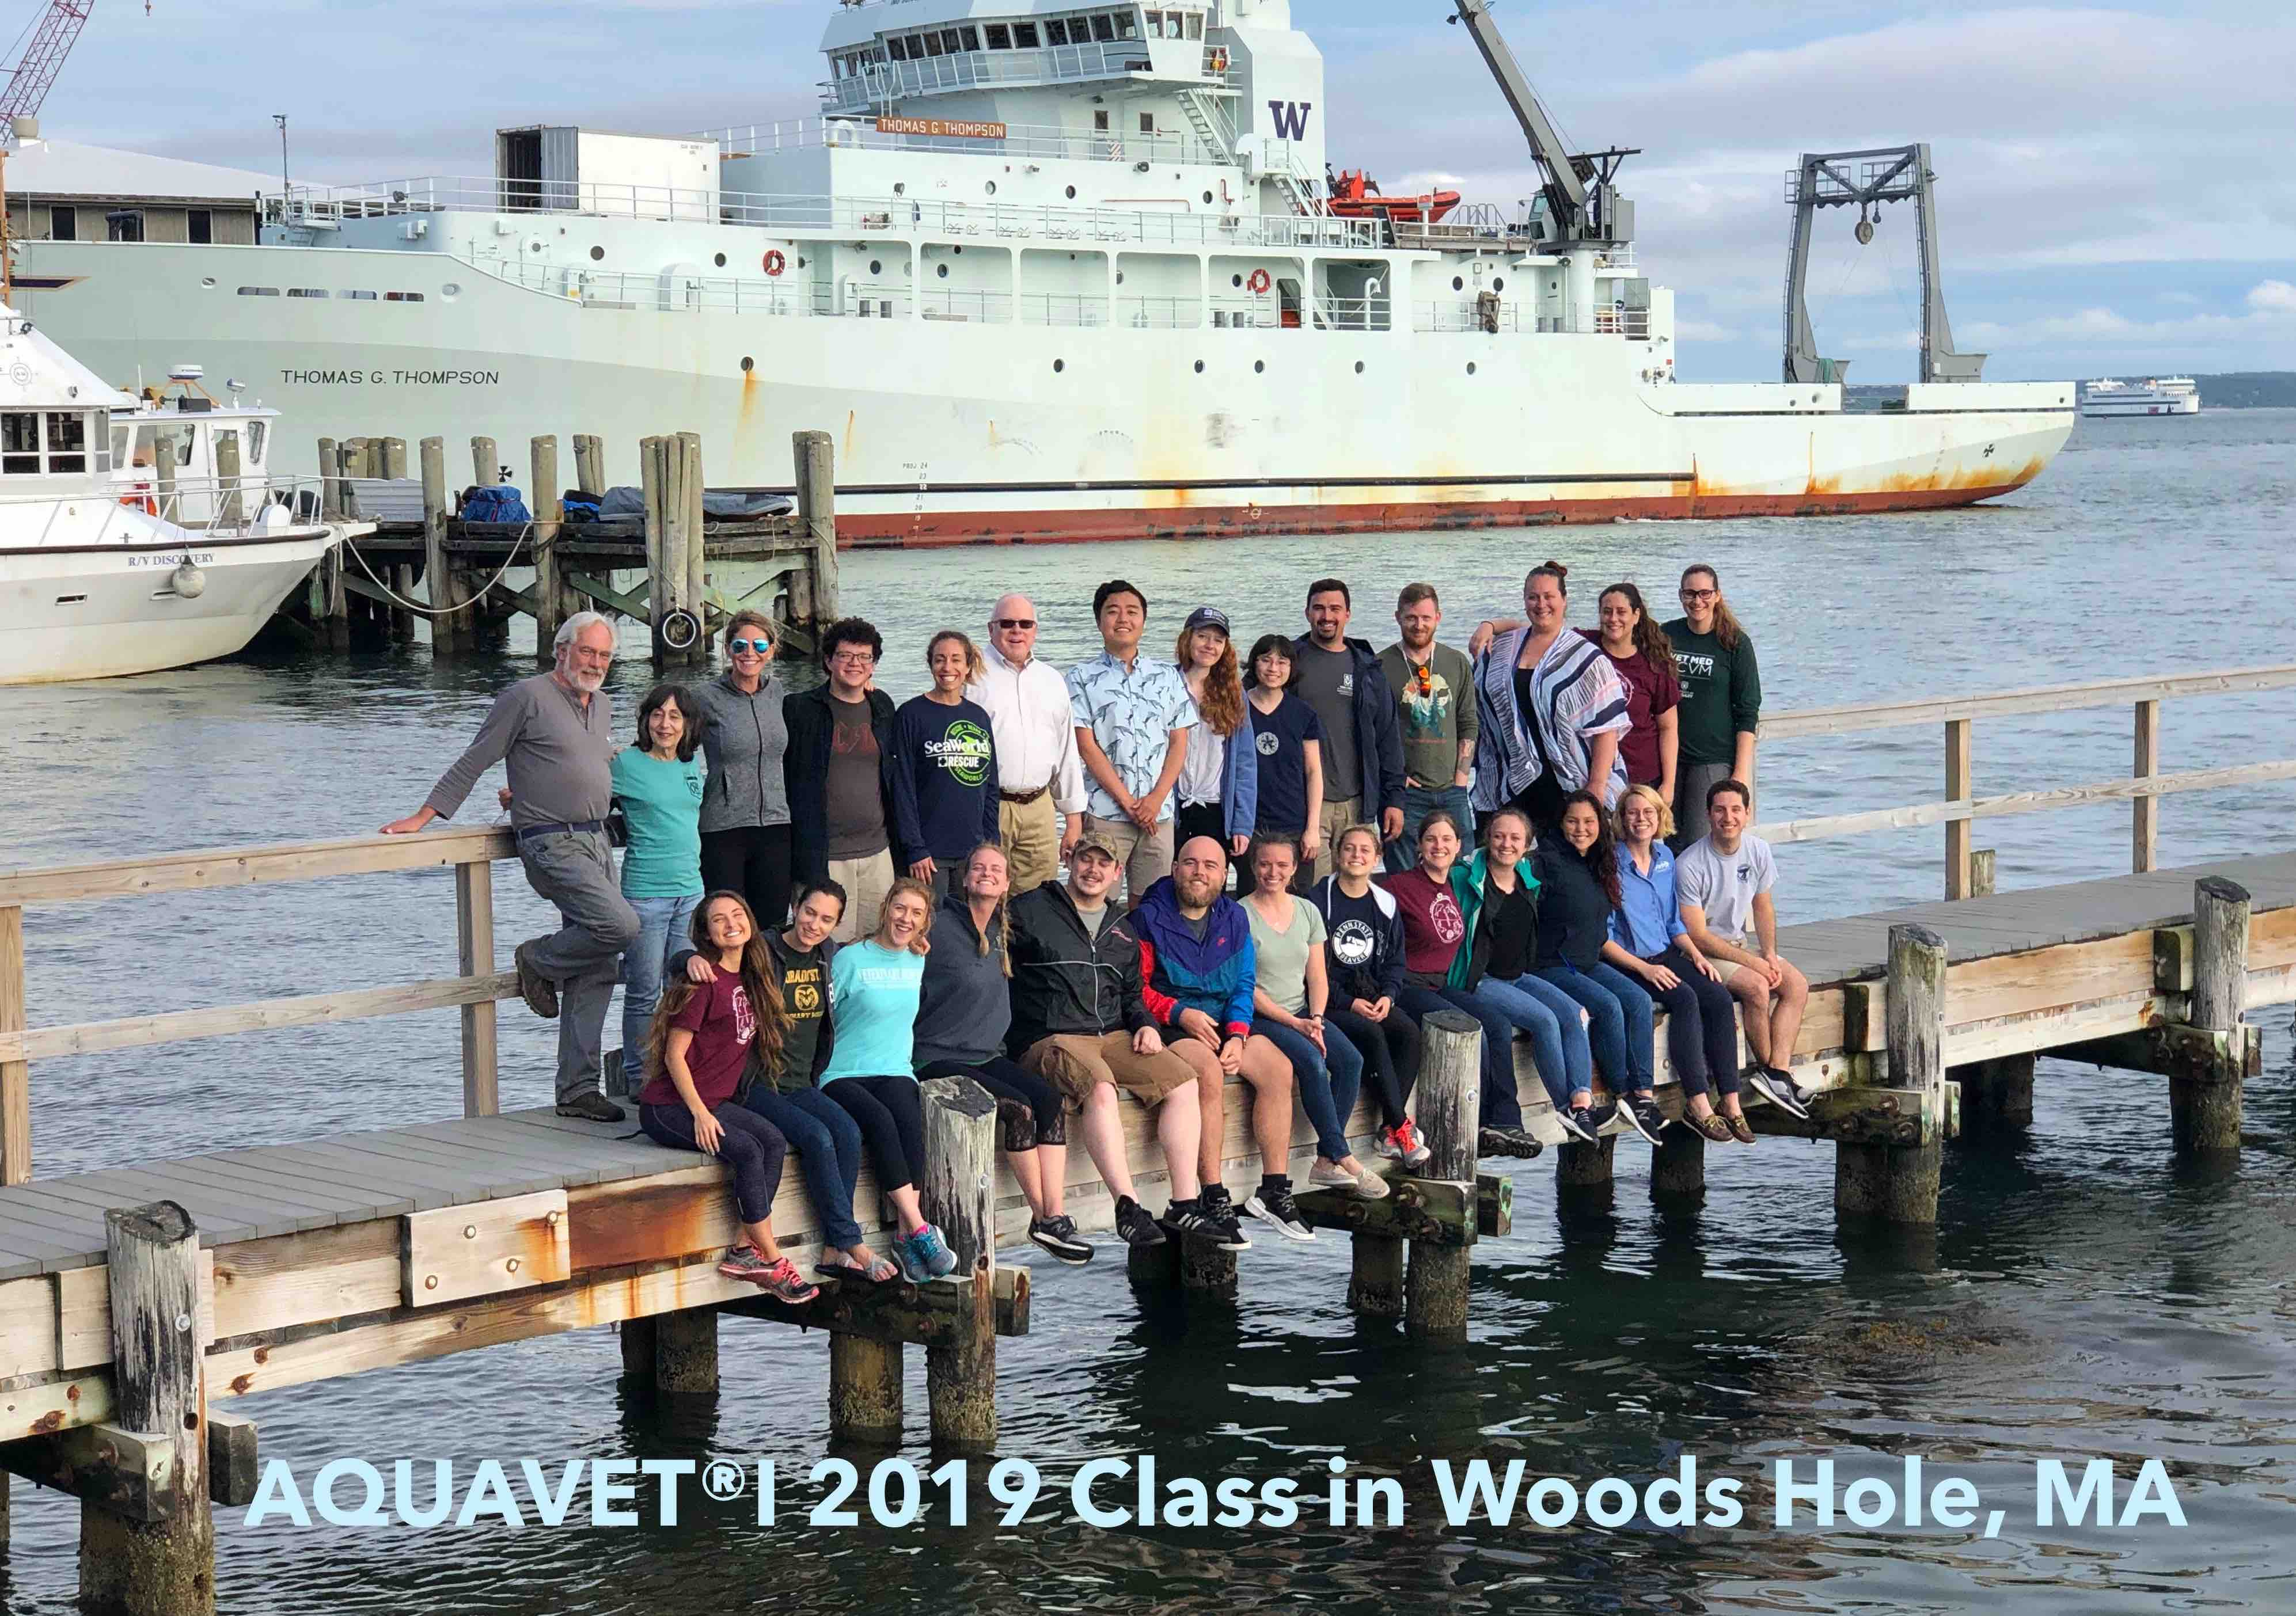 Aquavet I 2019 Class in Woods Hole Picture 2